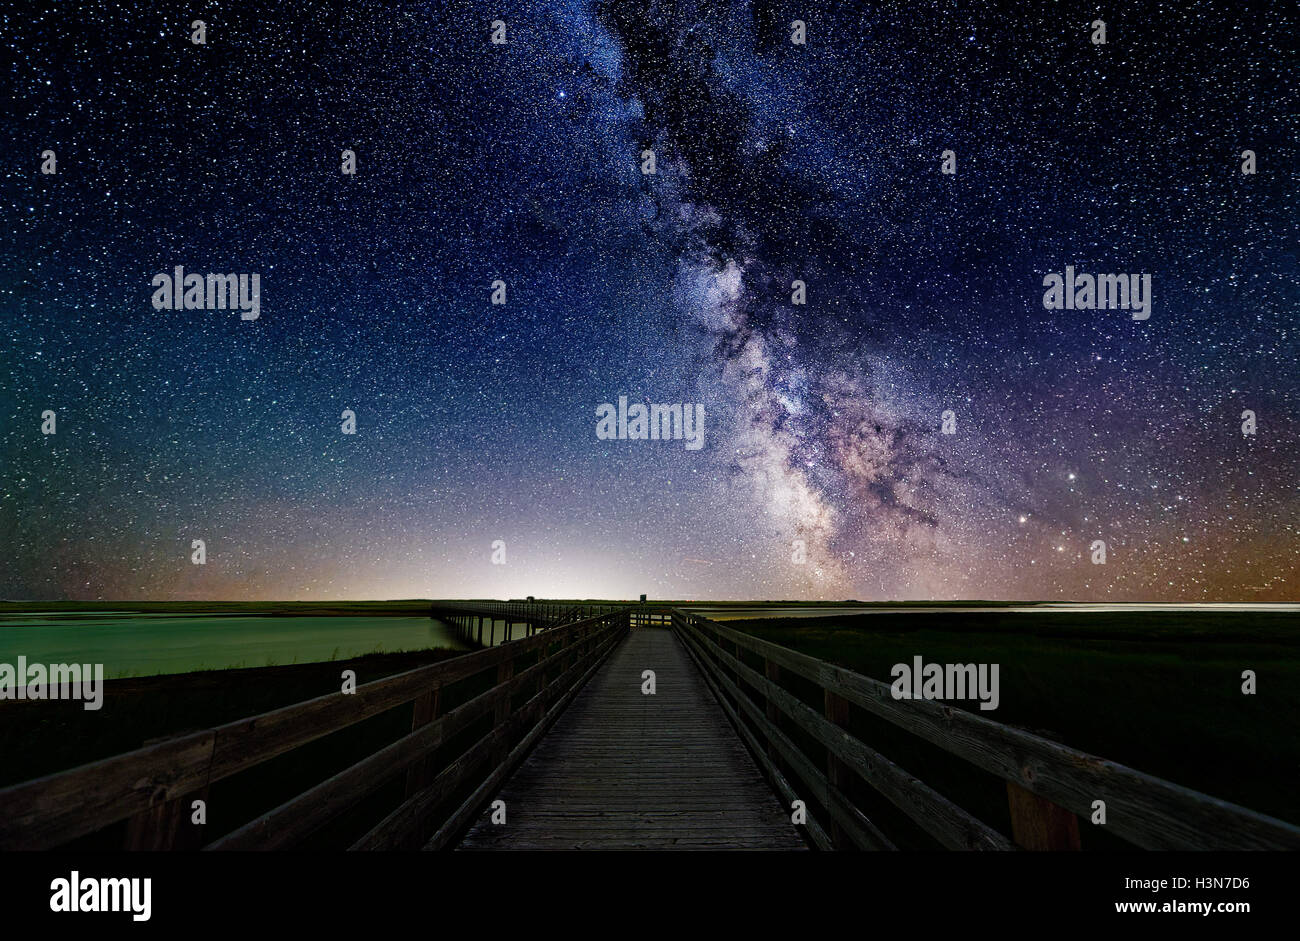 Kellys Beach Walkway and the Milky Way in dark skies in Kouchibouguac National Park in New Brunswick, Canada - Stock Image